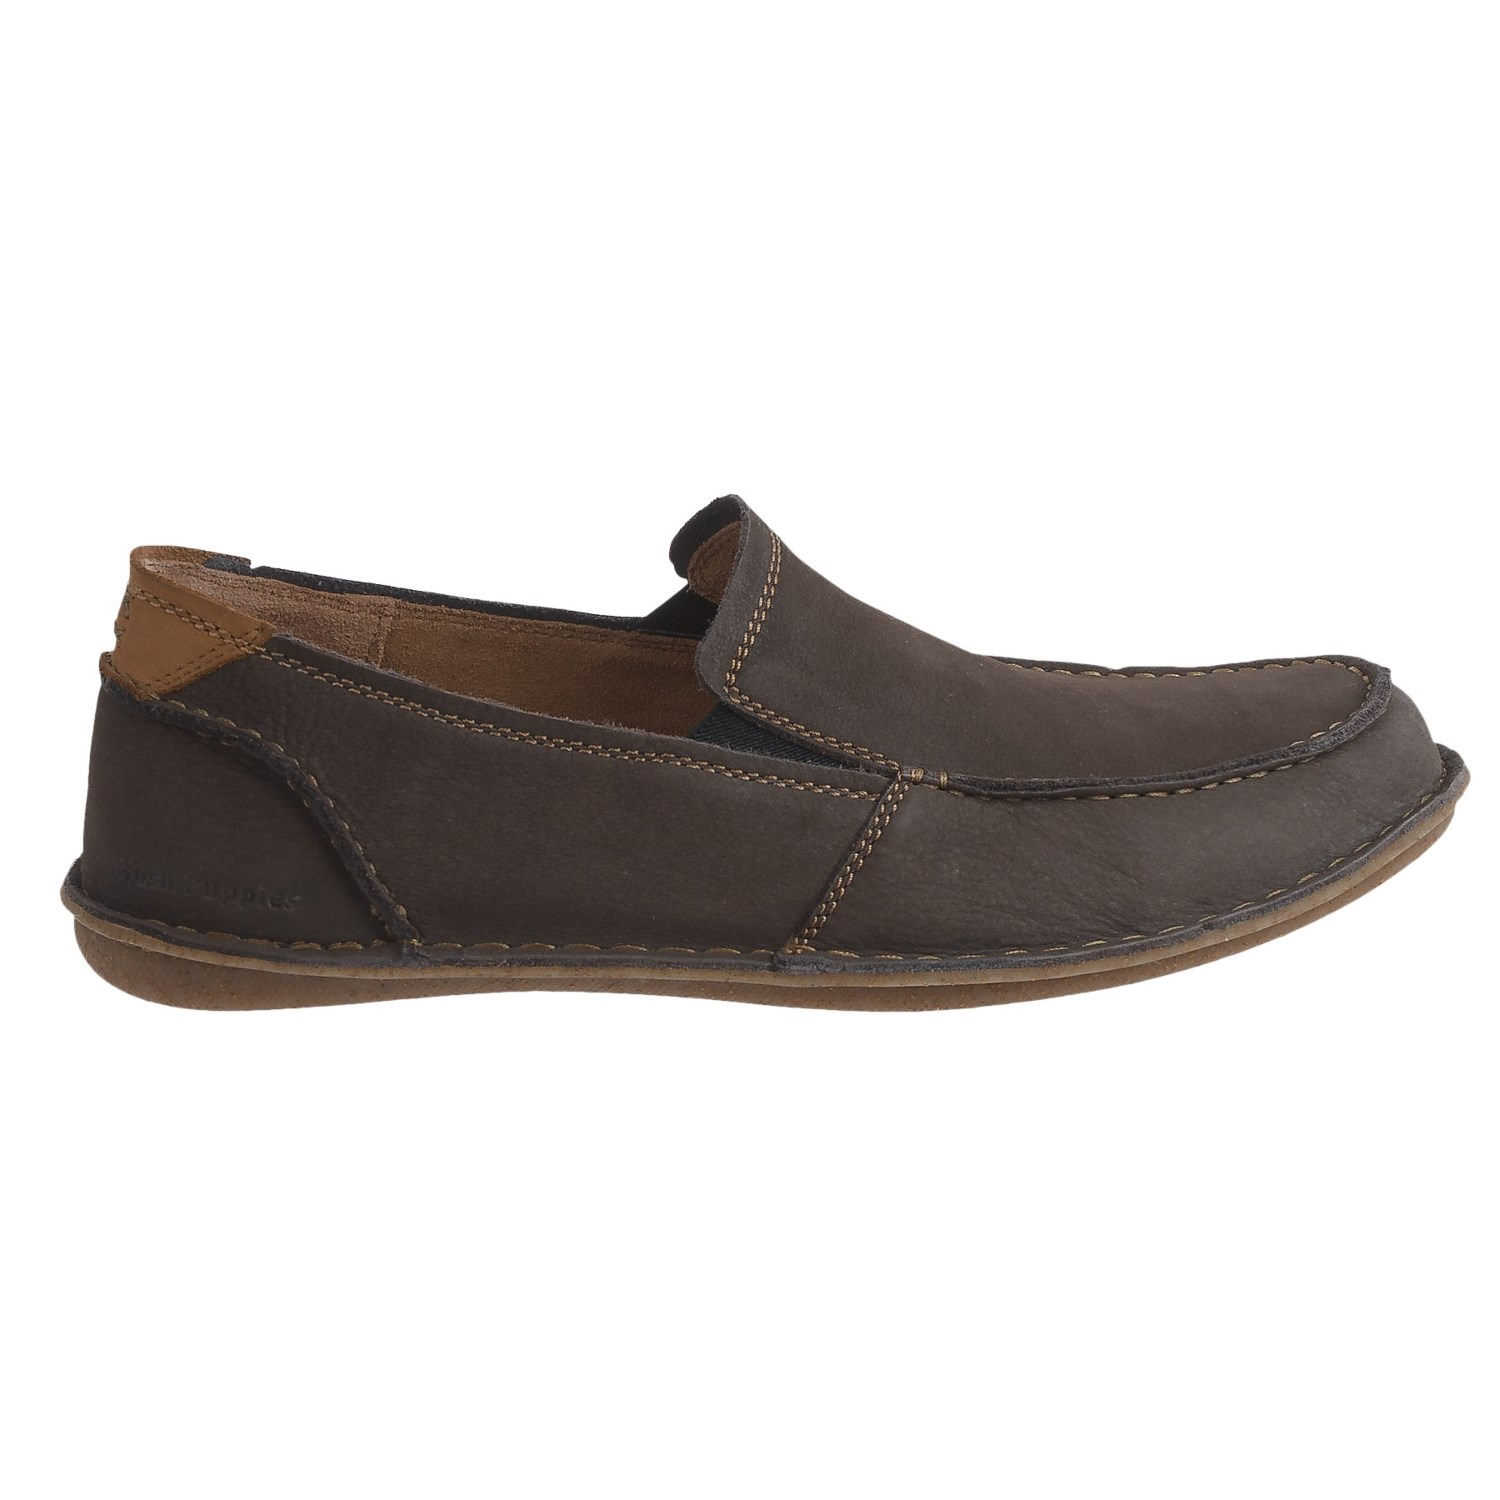 Hush Puppies Asil Roll Flex Loafers - Leather (For Men)